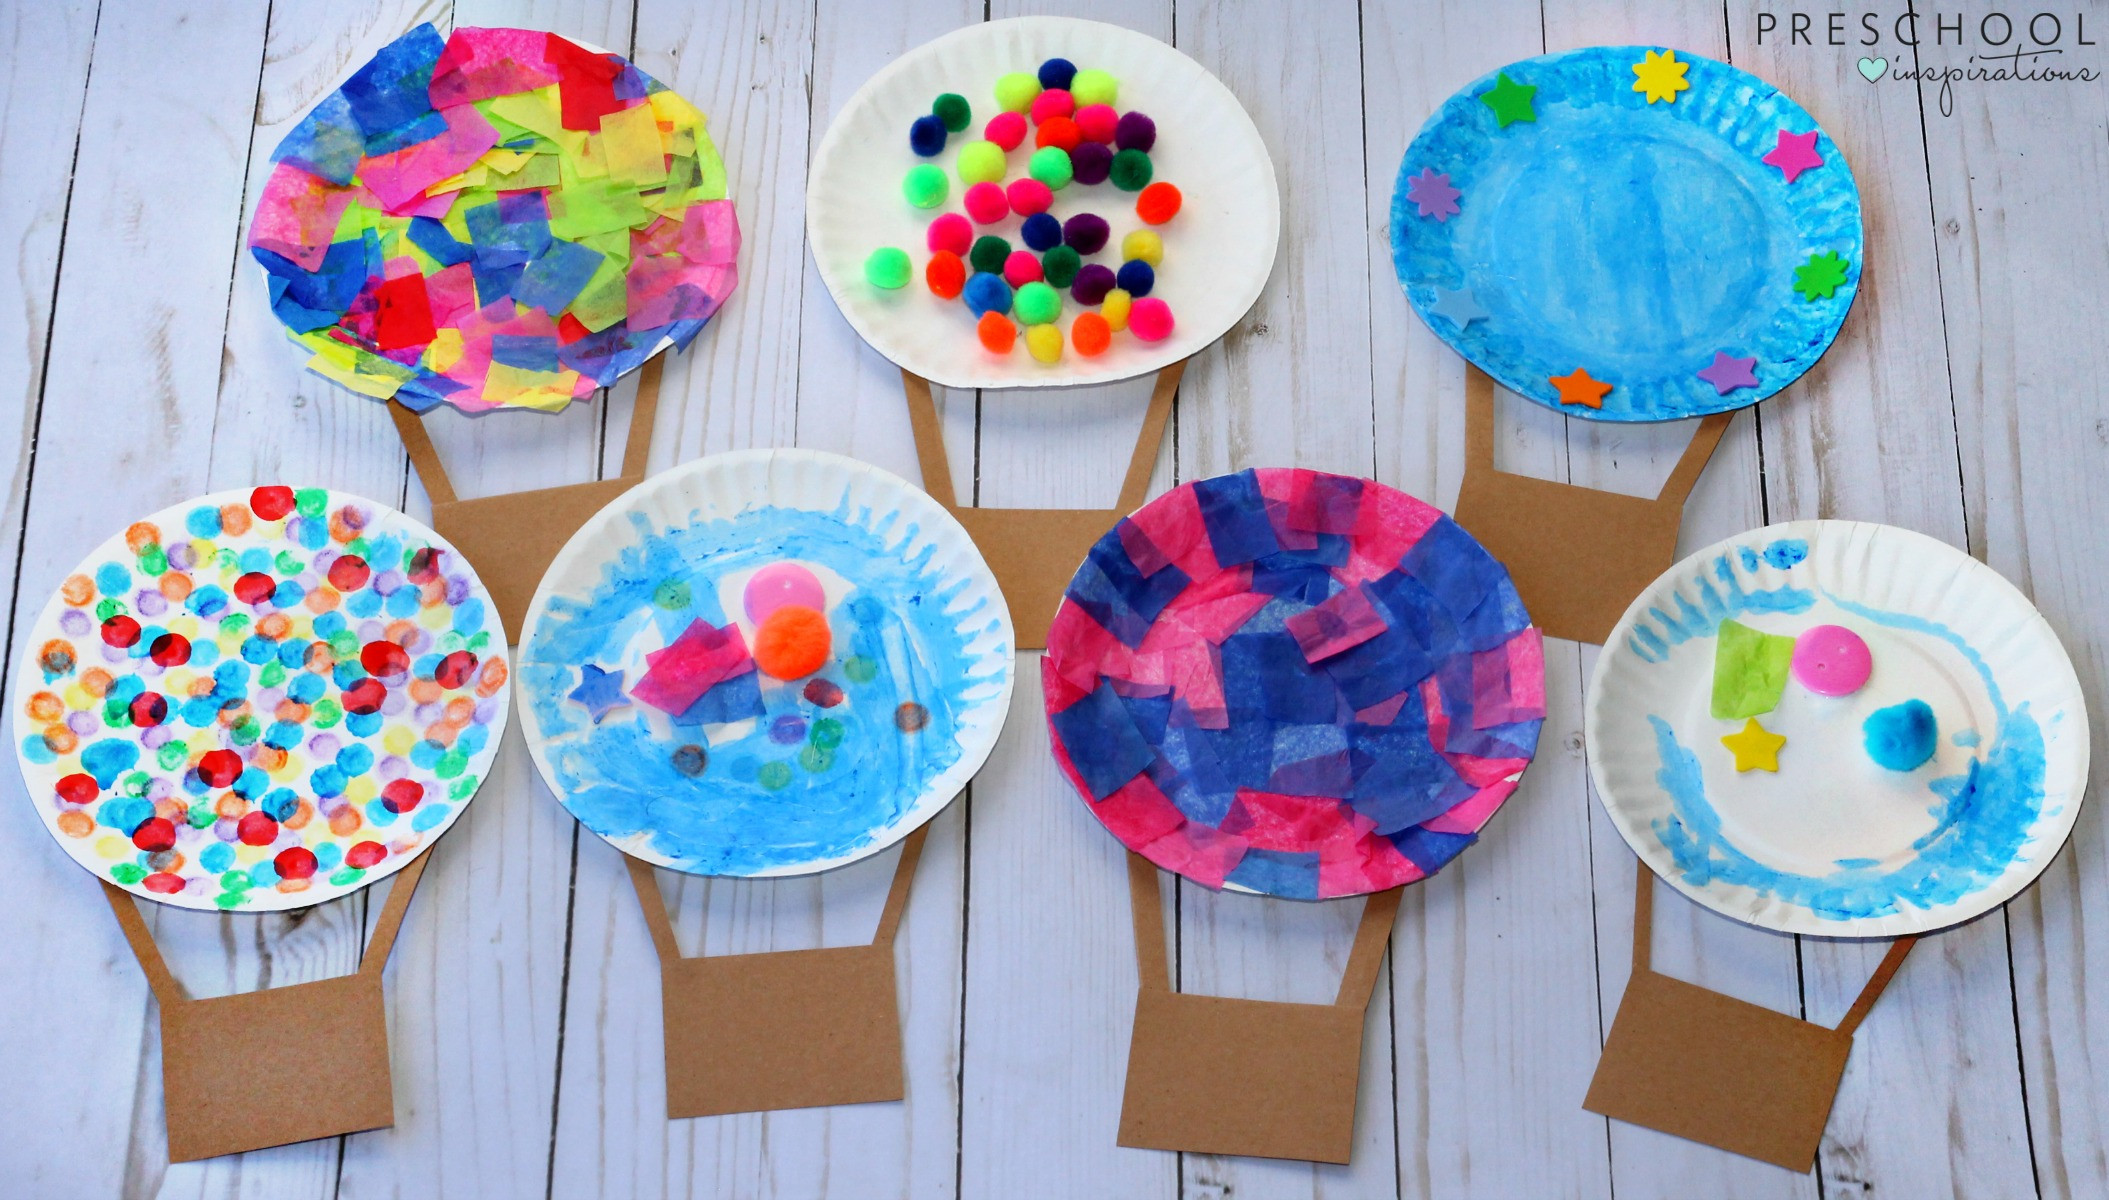 Best ideas about Arts And Crafts Activities For Kids . Save or Pin Hot Air Balloon Process Art Activity Preschool Inspirations Now.